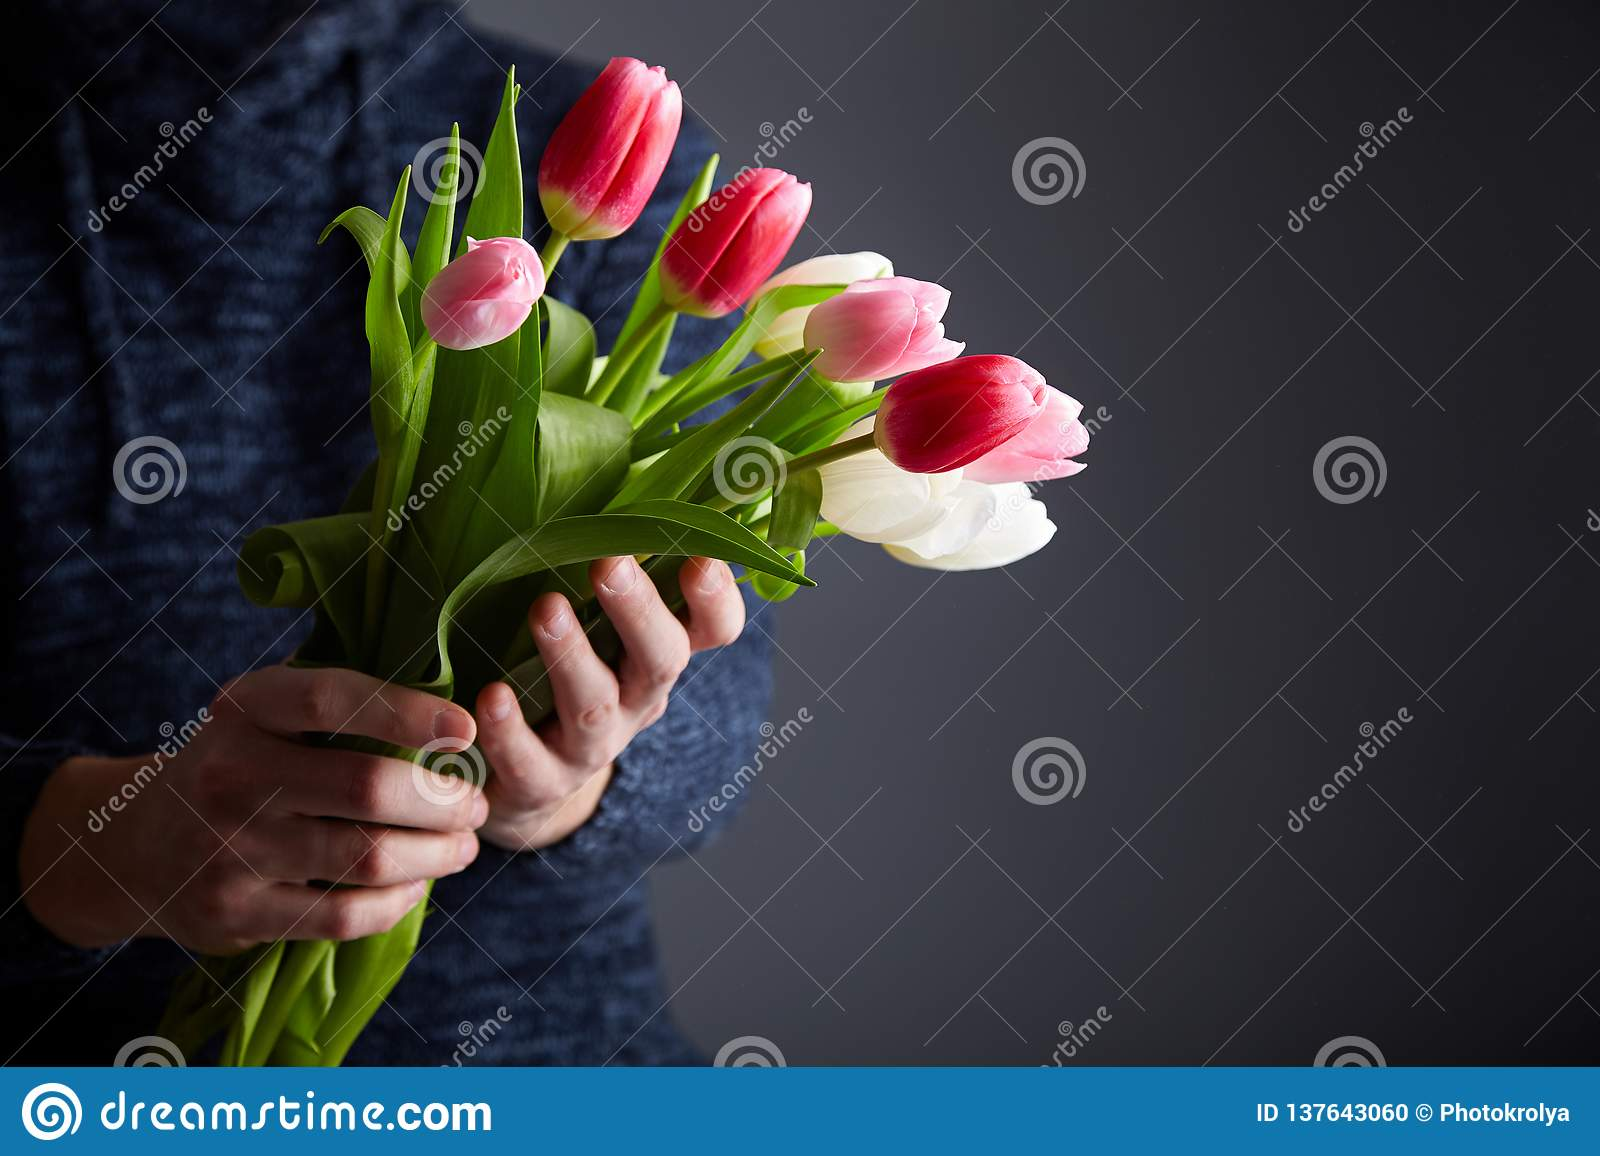 A Man holding bunch of tulips